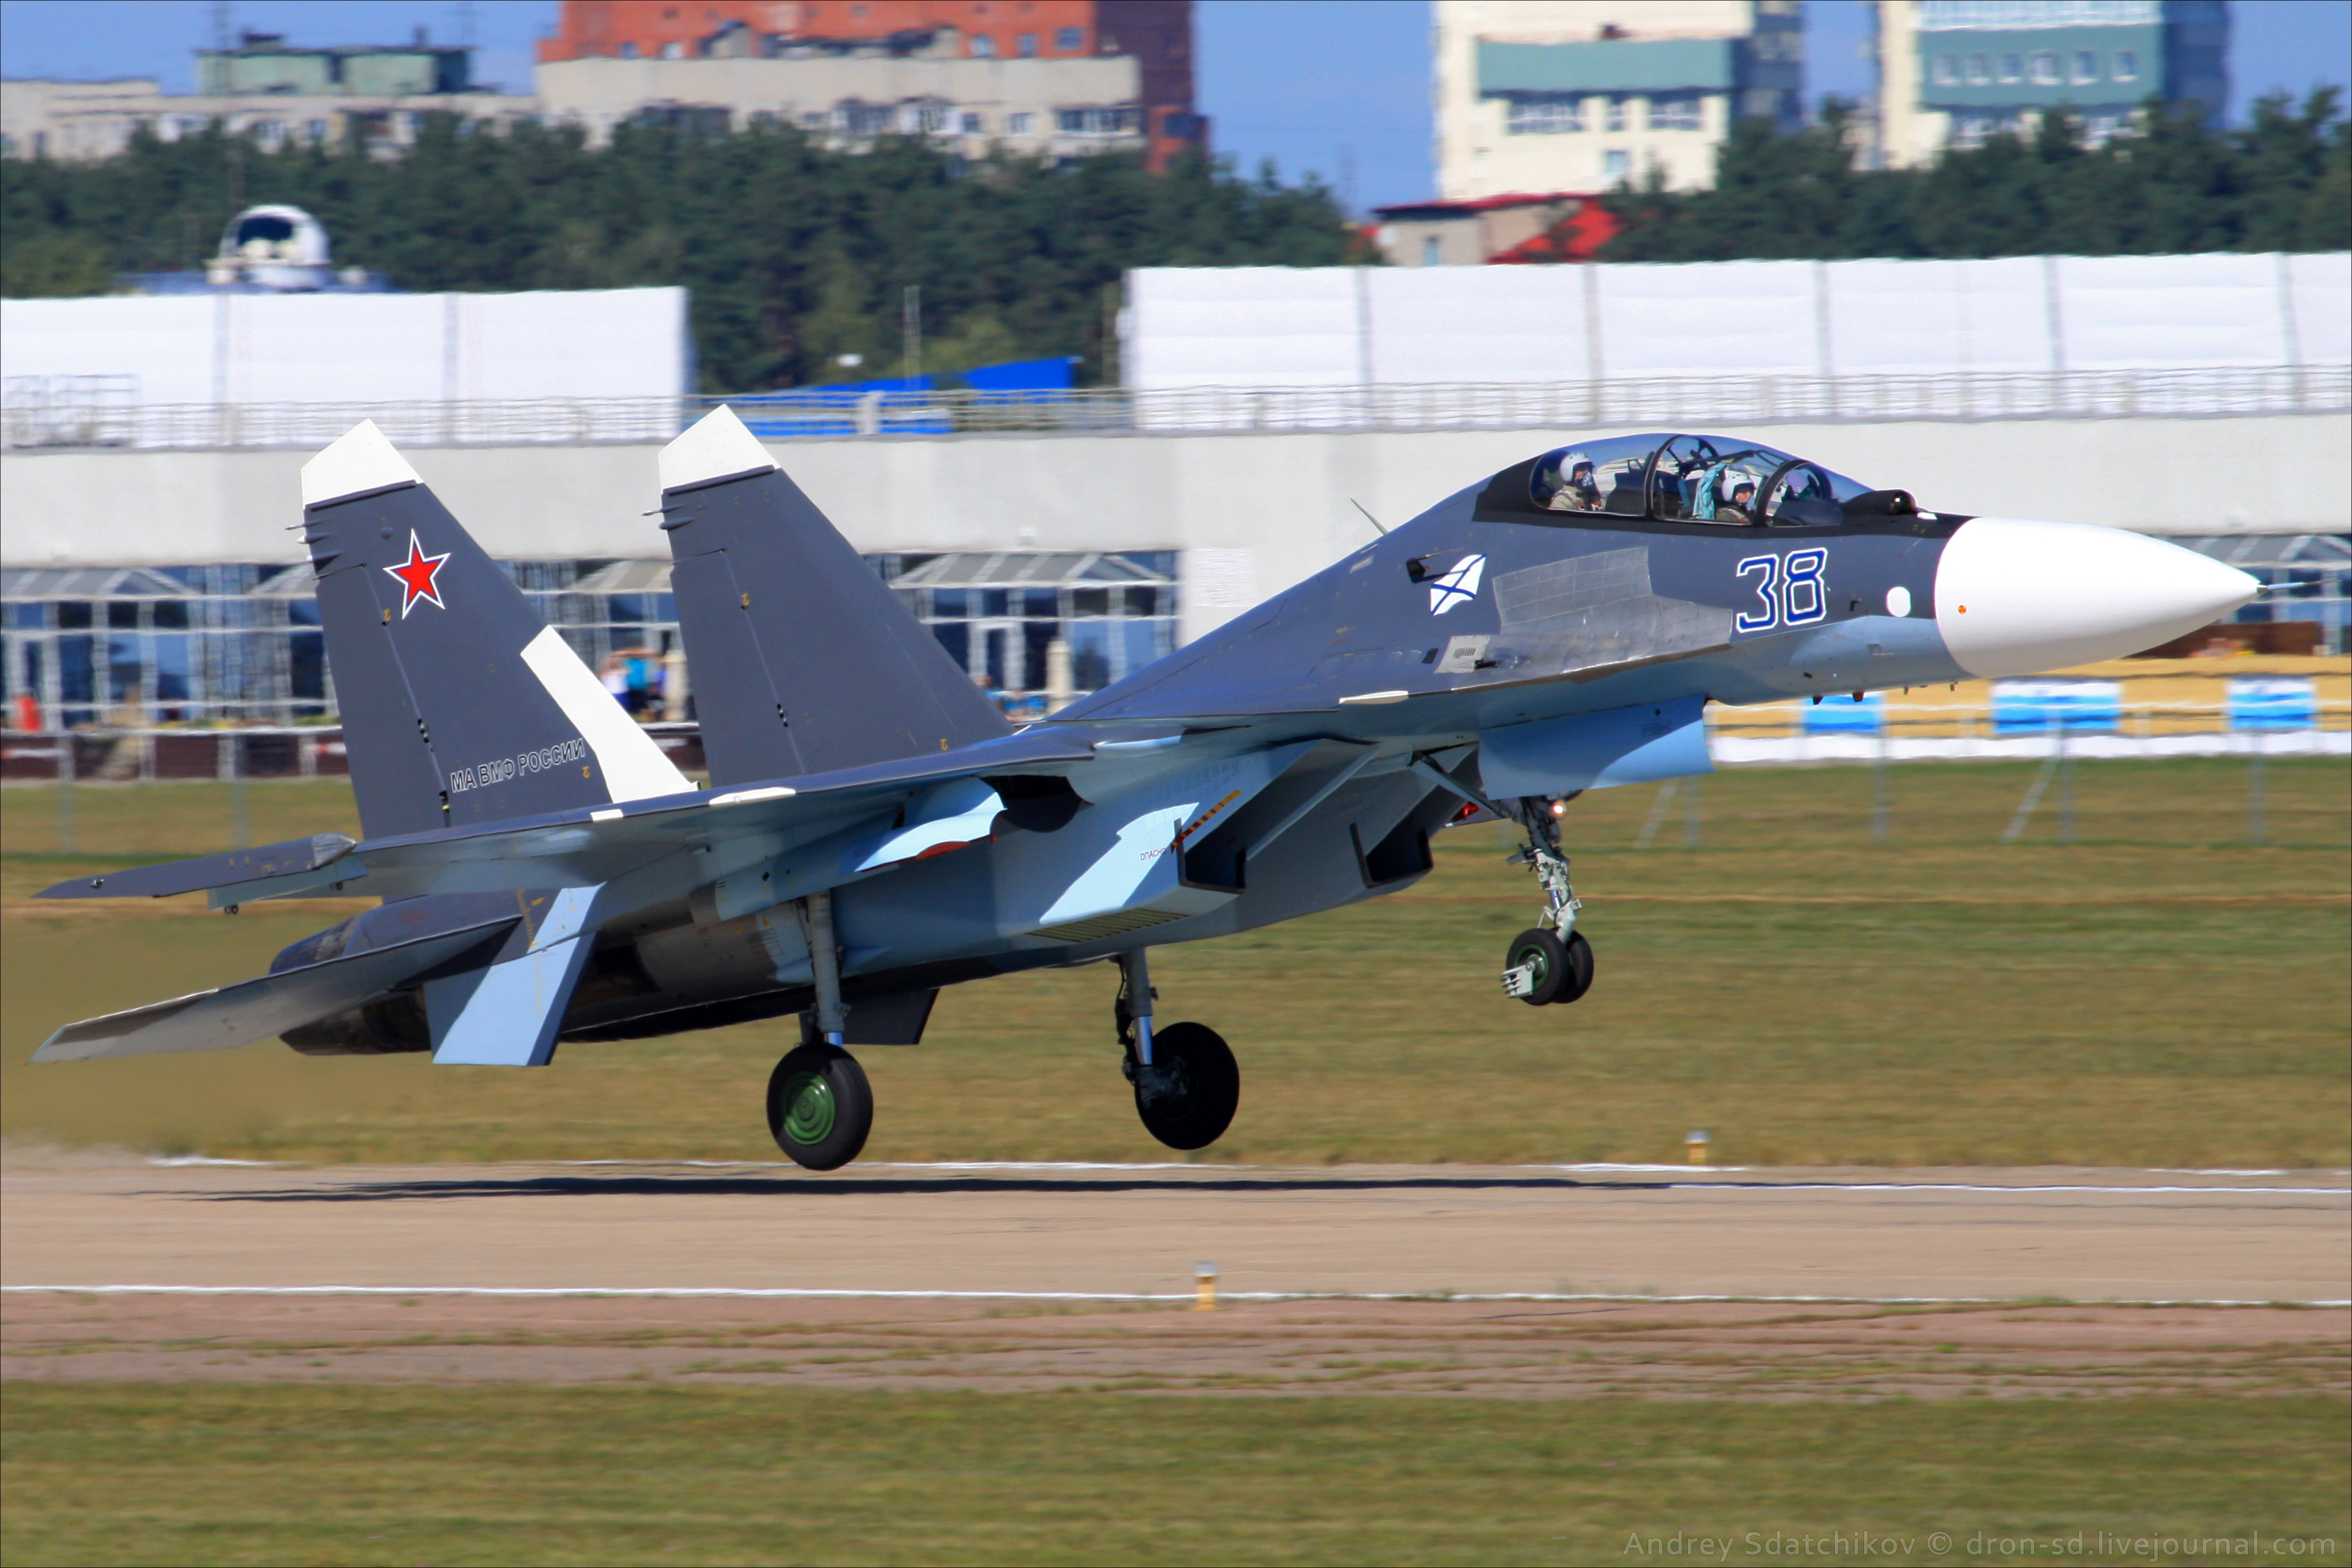 MAKS-2015 Air Show: Photos and Discussion - Page 3 0_12266d_f2ae6e1d_orig